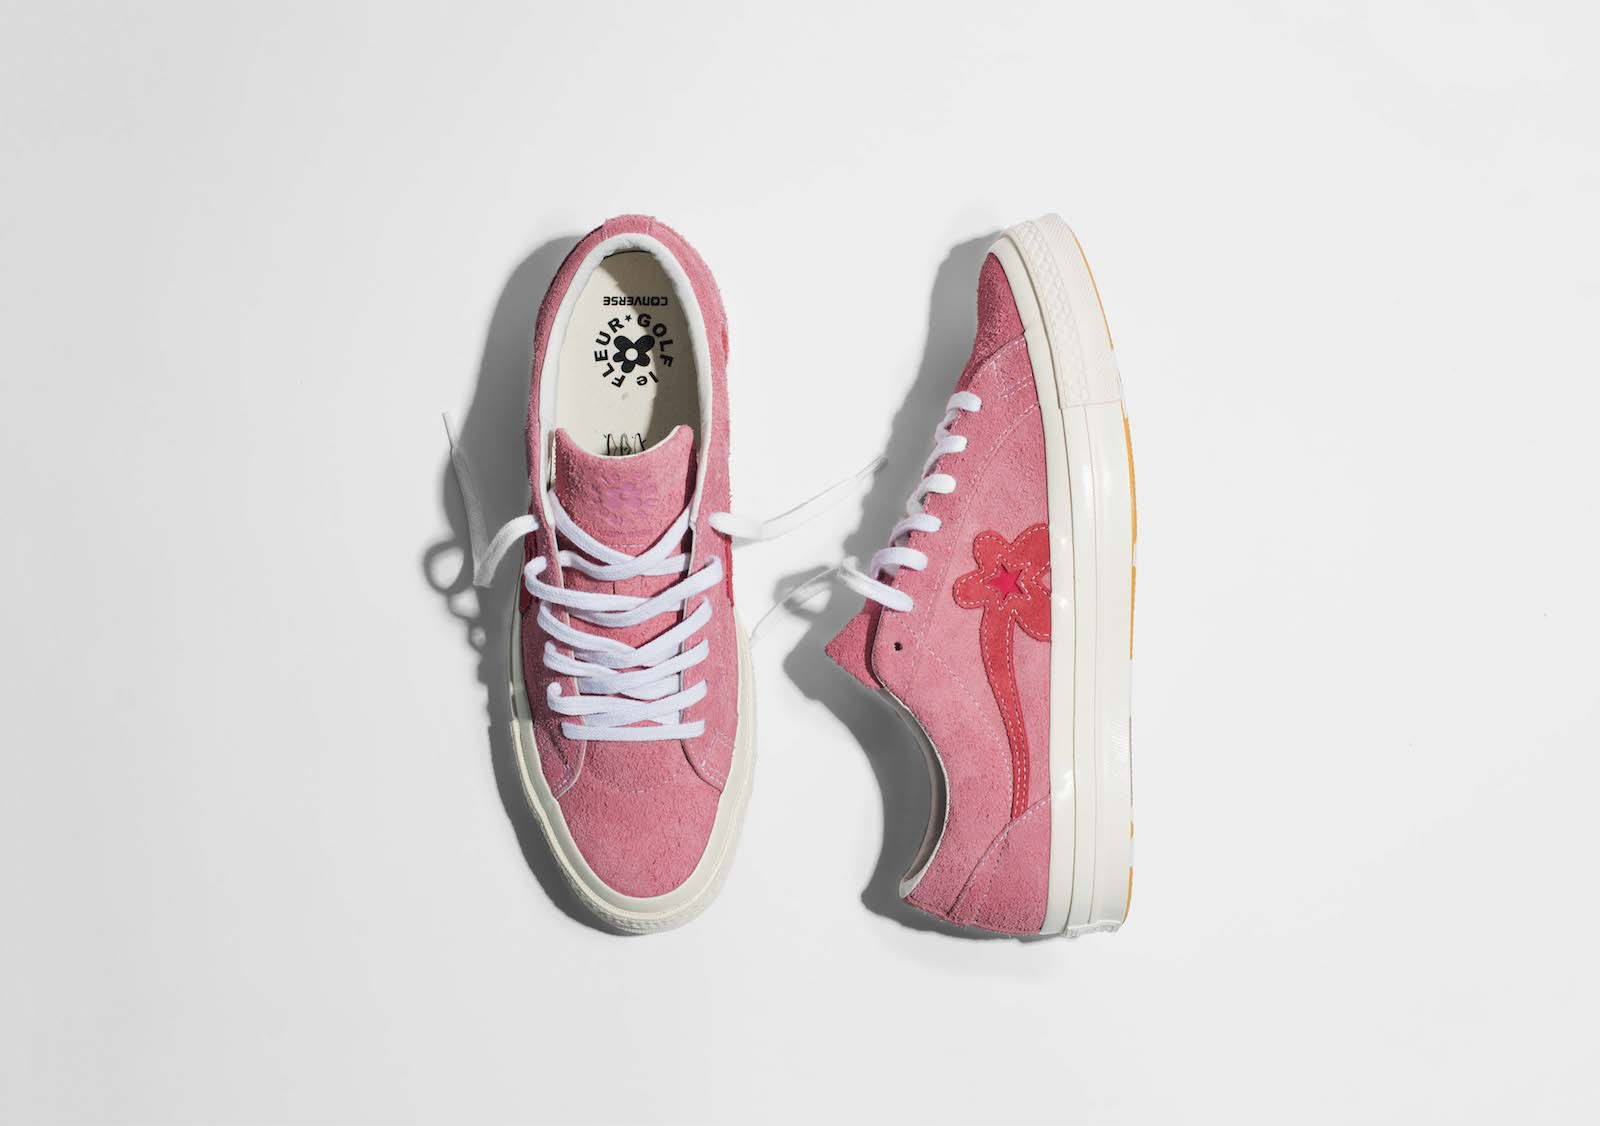 Converse Golf Le Fleur One Star : Release Date | WAVE®